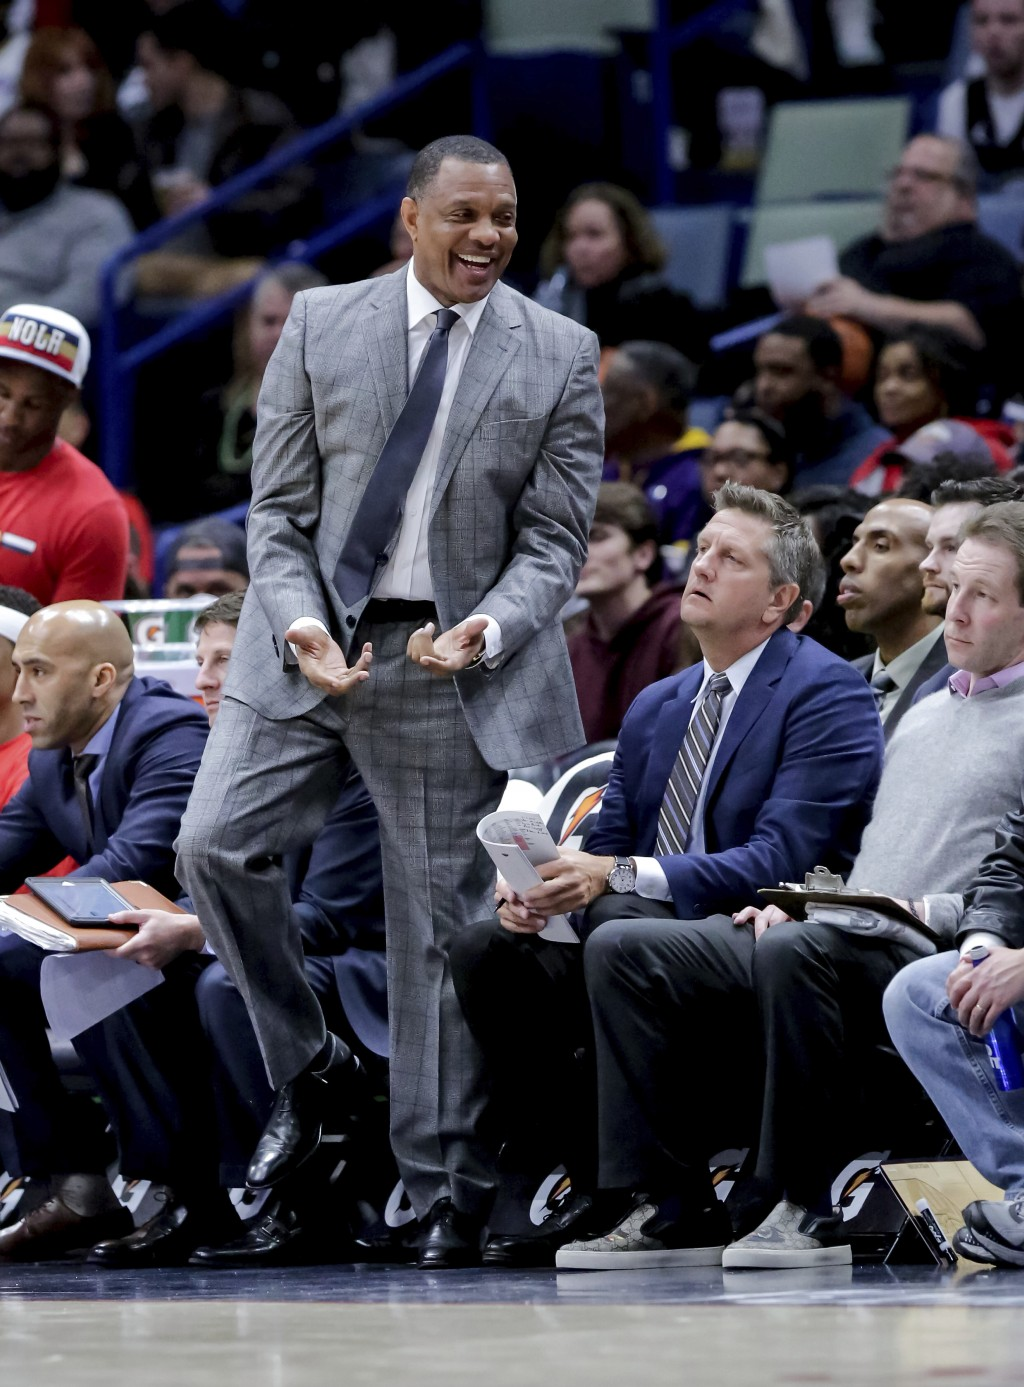 New Orleans Pelicans head coach Alvin Gentry reacts after a play against the Philadelphia 76ers in the first half of an NBA basketball game in New Orl...